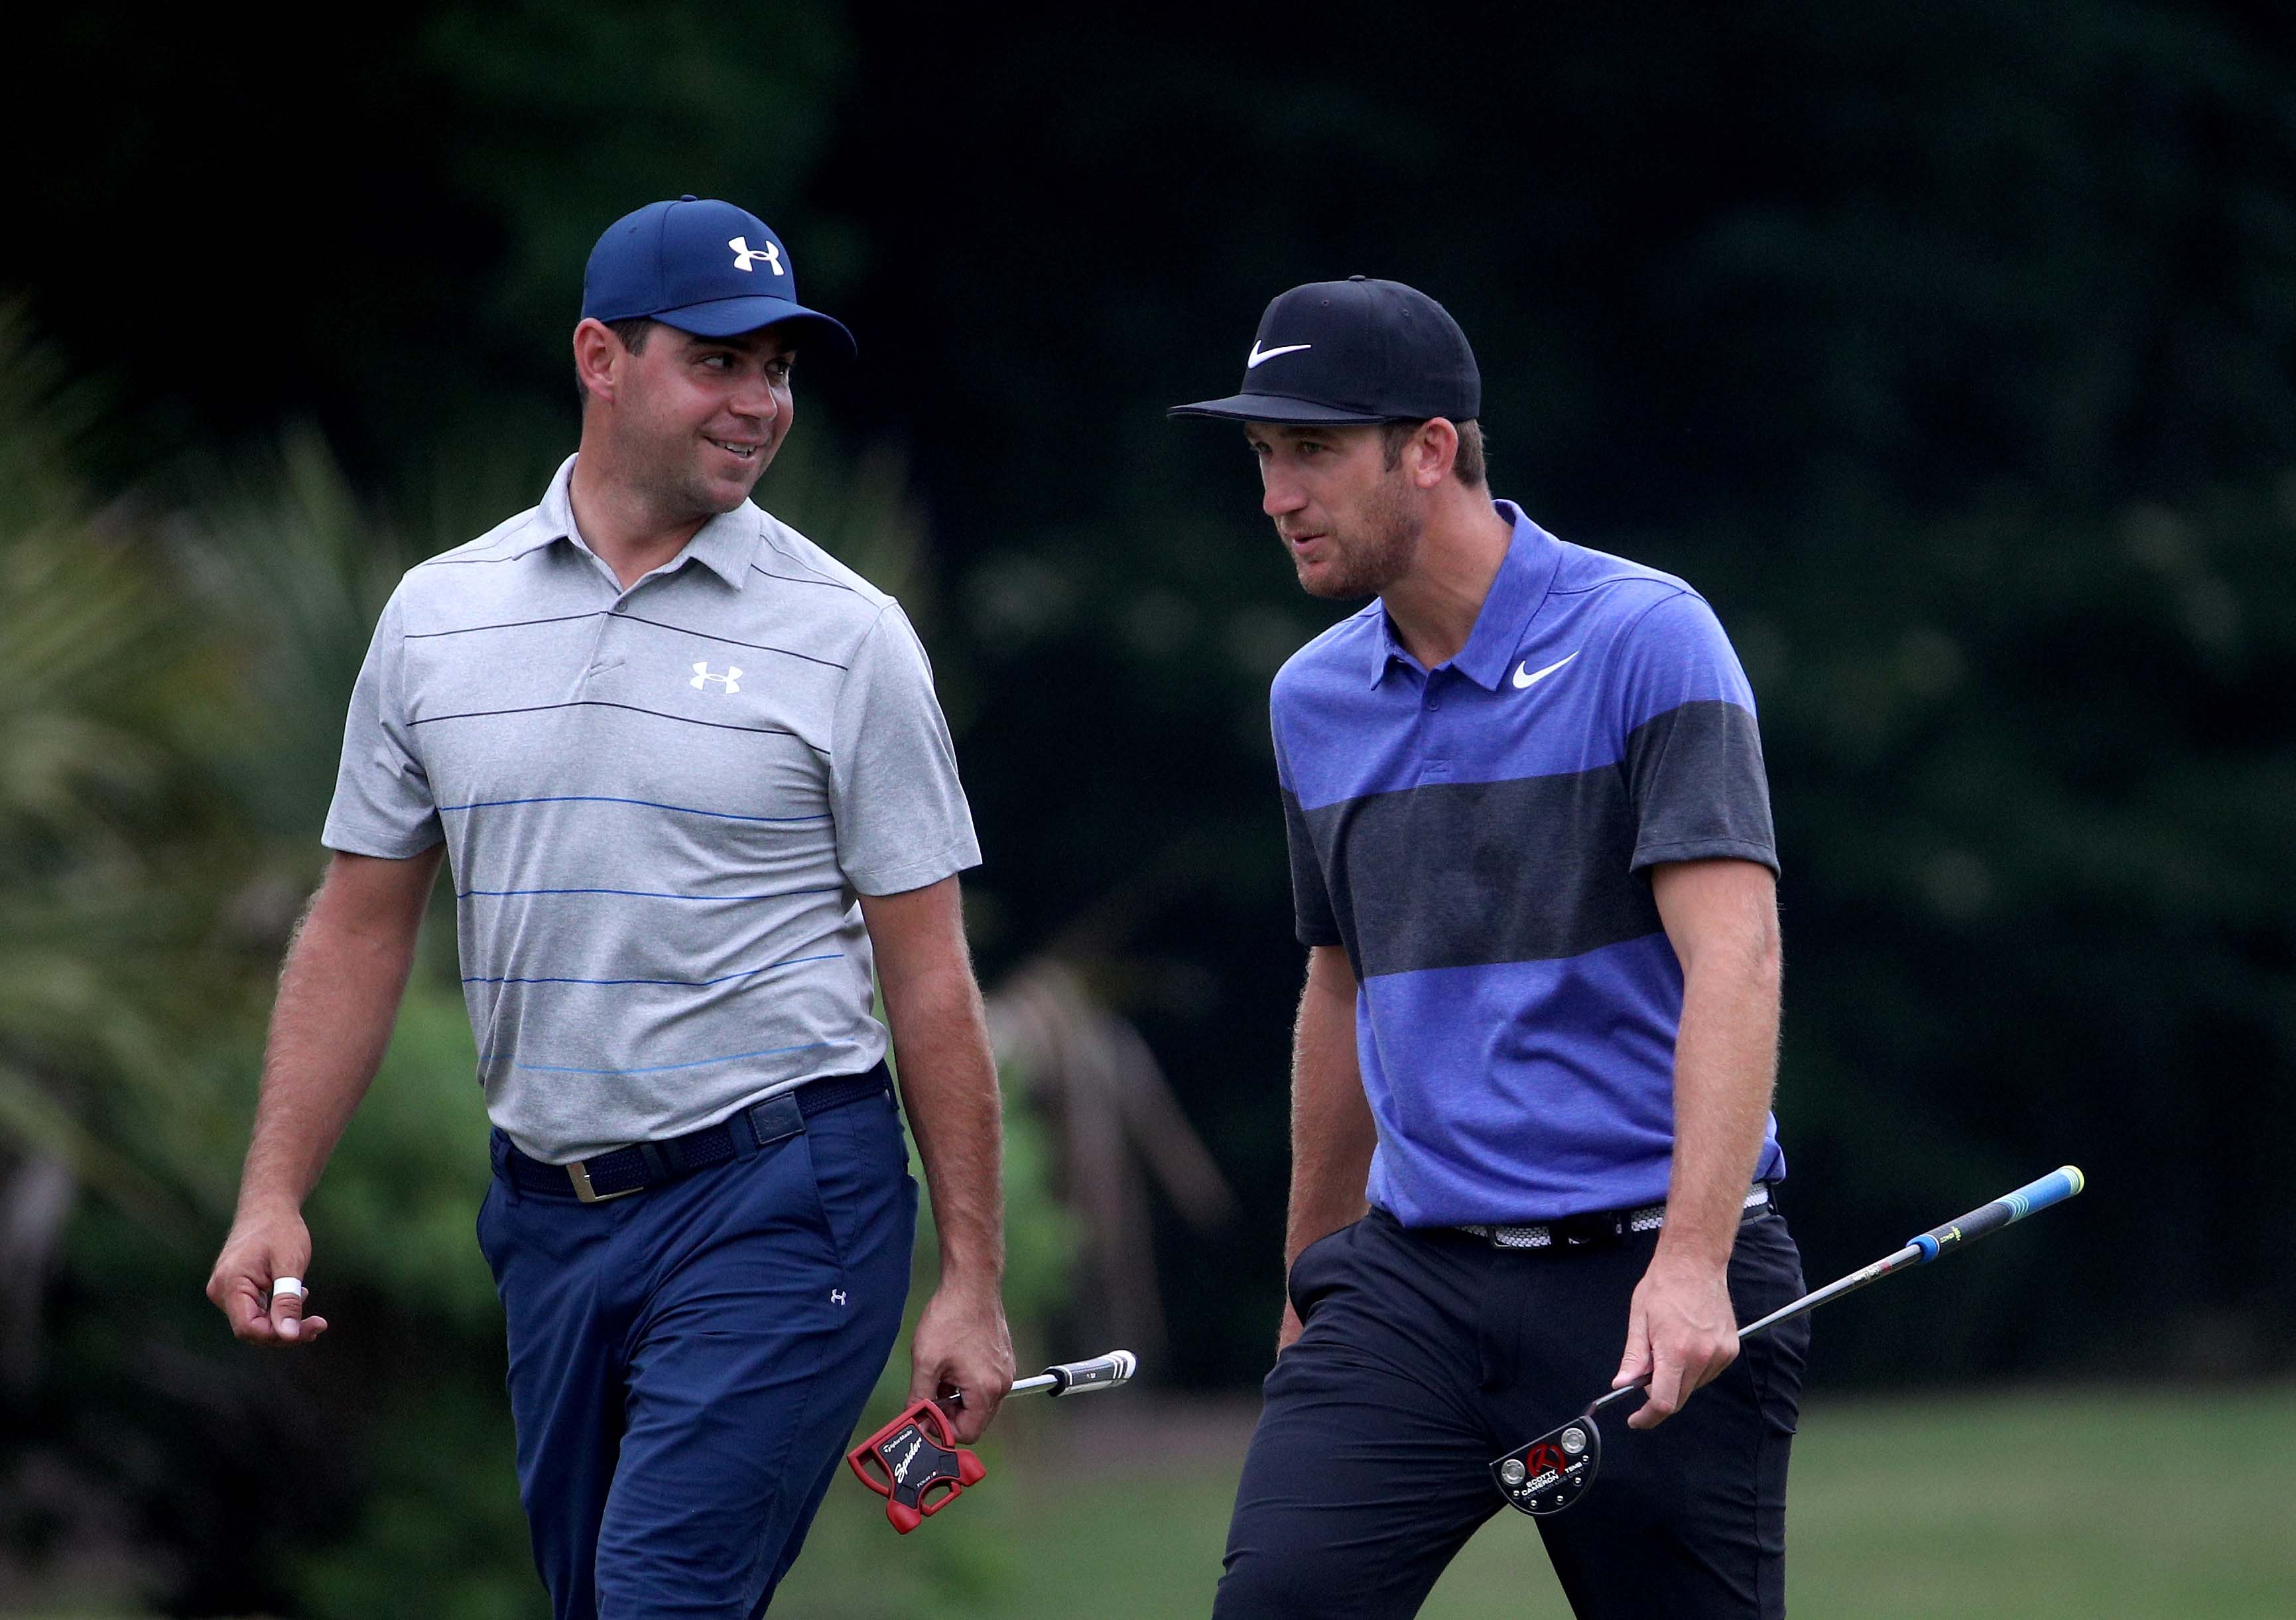 Gary Woodland and Kevin Chappell